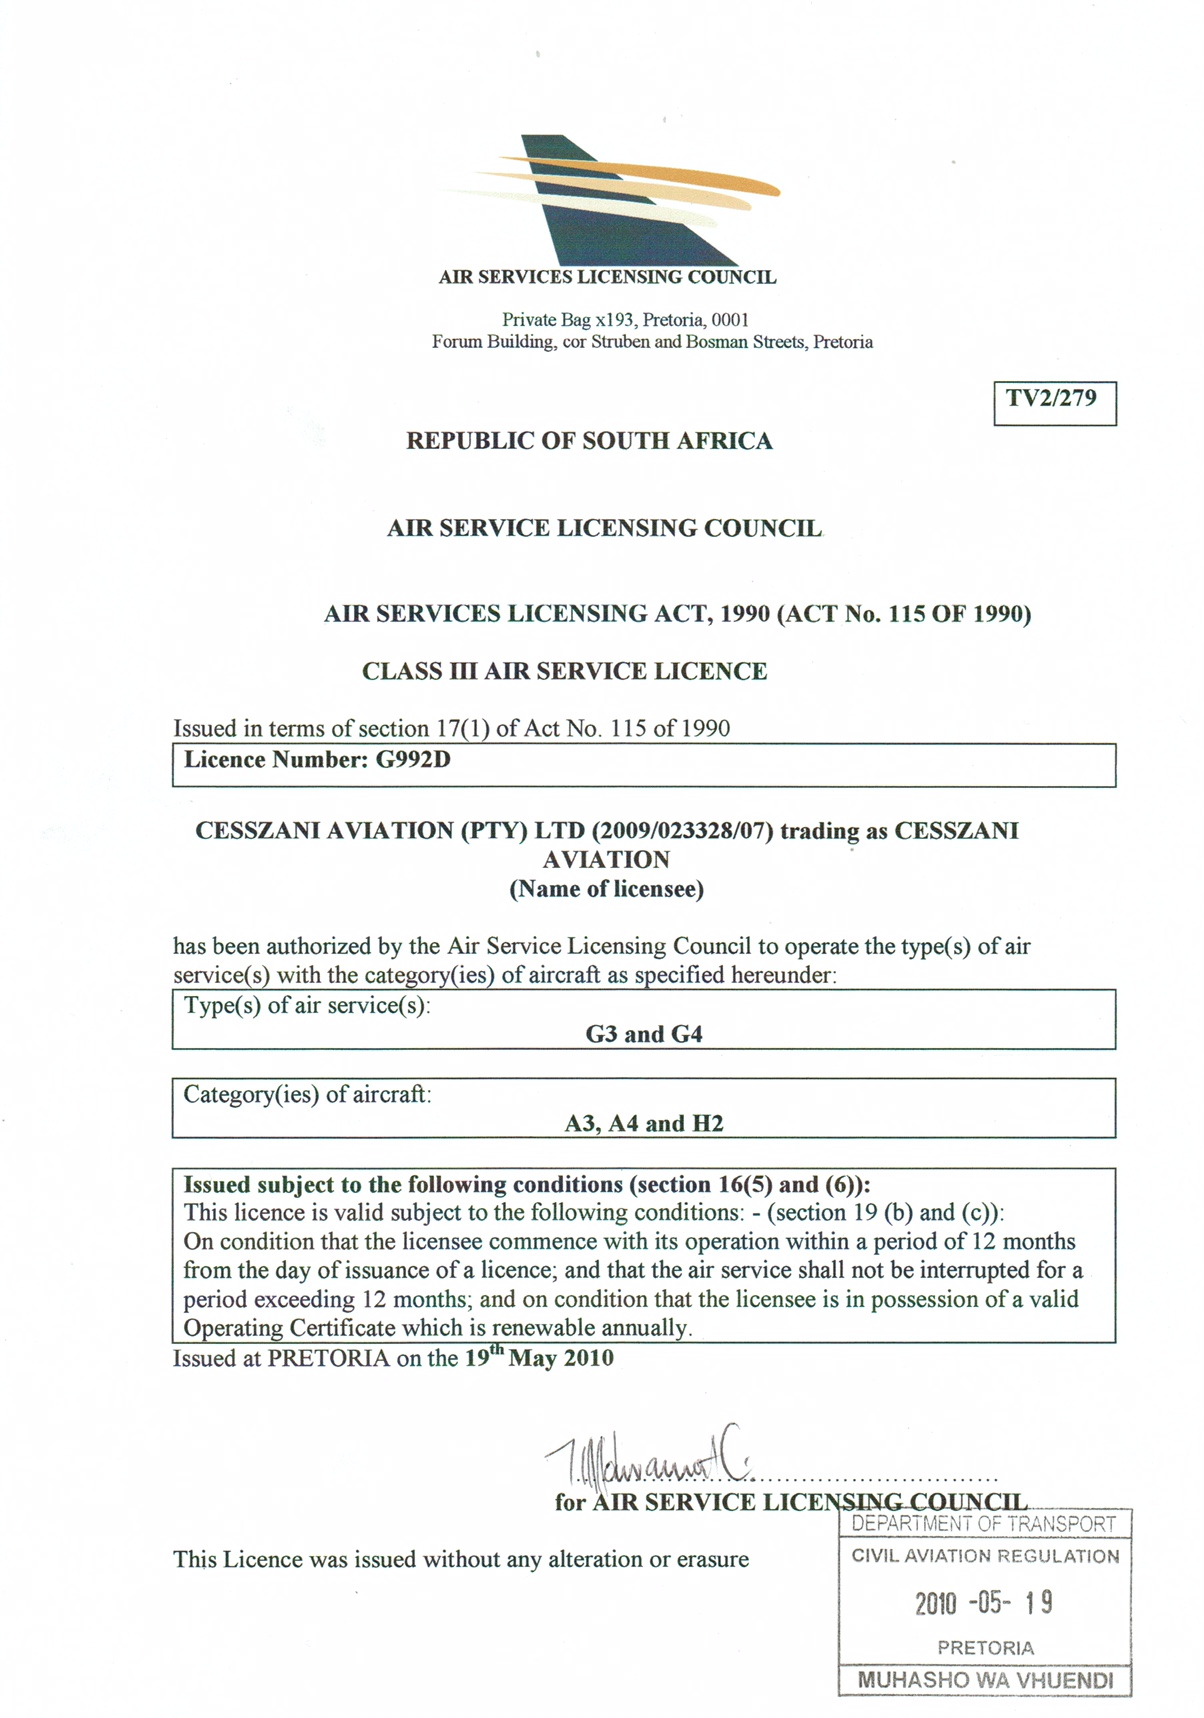 Air Service Licensing Council Licences